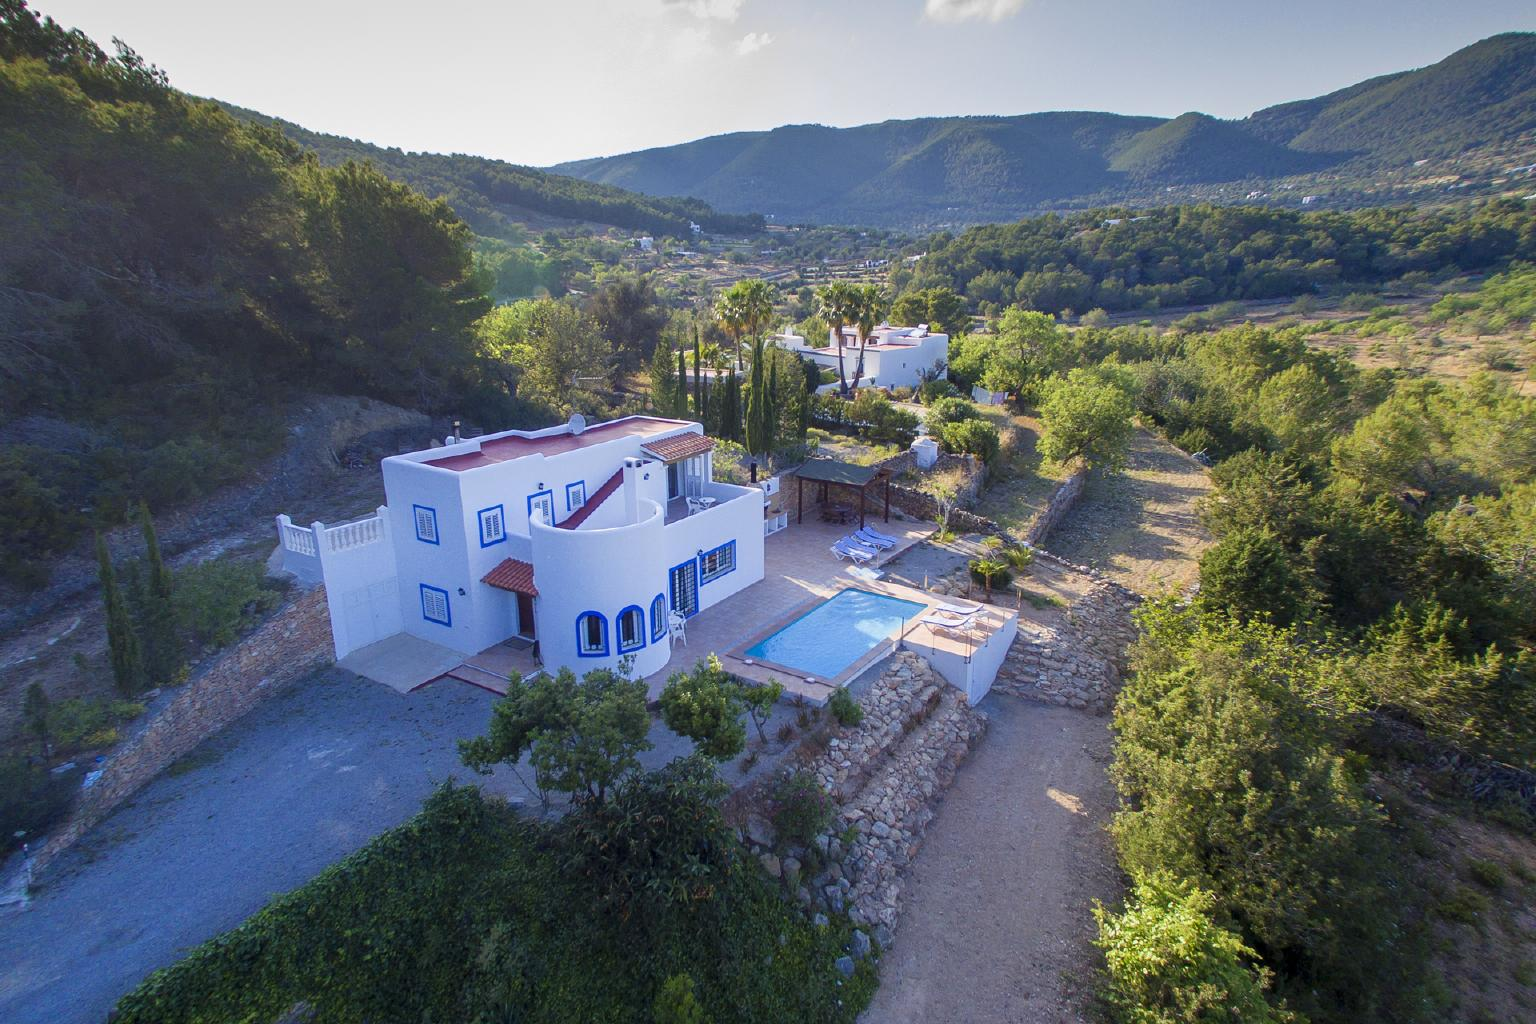 Aerial view of the rental house and the natural landscape of ibiza